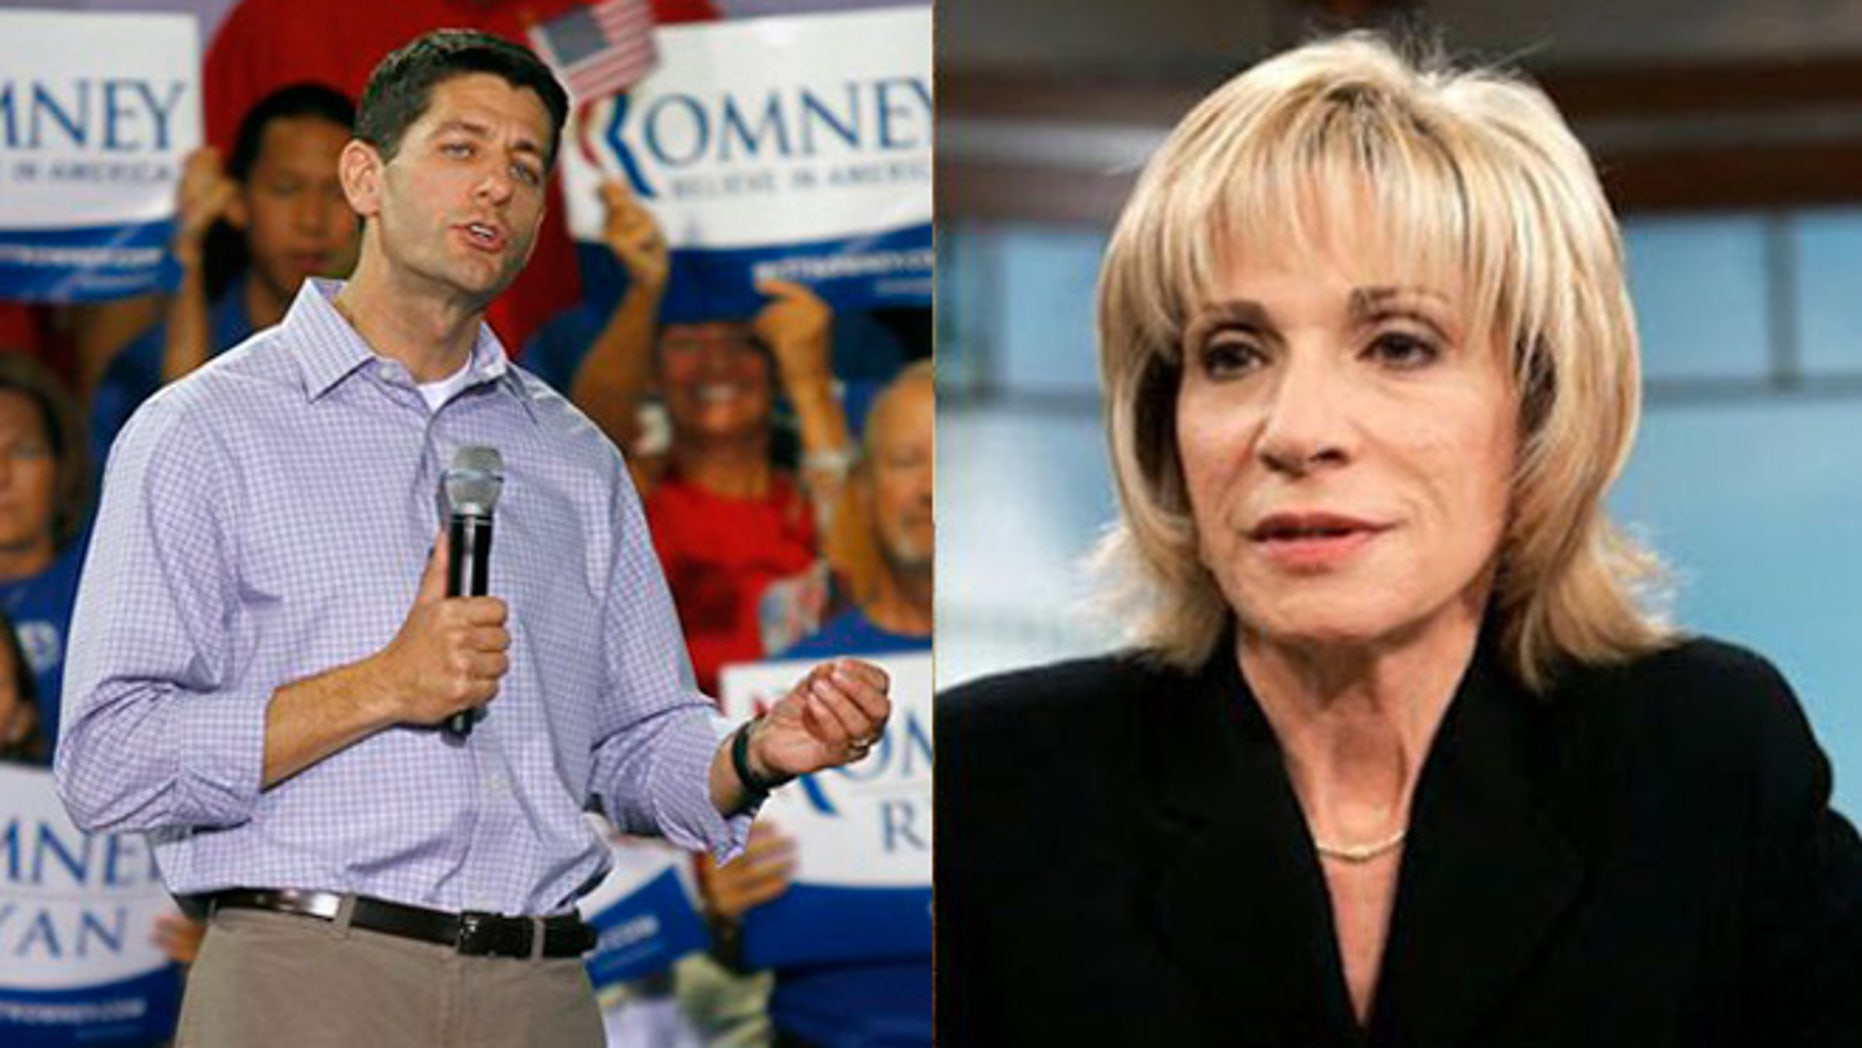 Shown here are Rep. Paul Ryan and NBC's Andrea Mitchell.